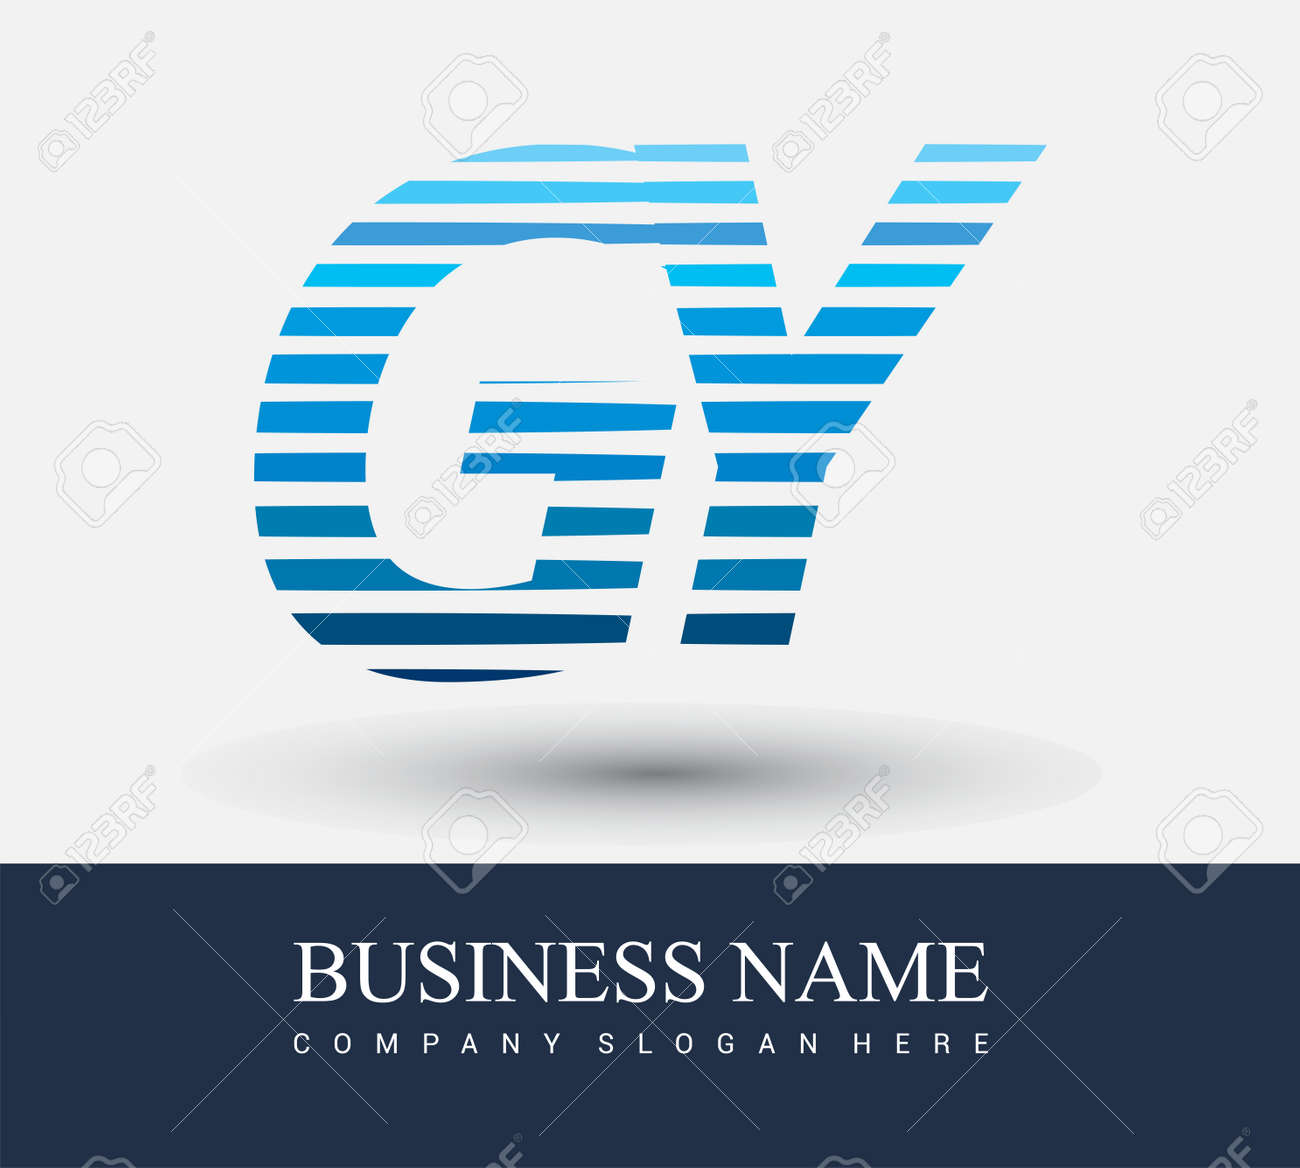 initial letter logo GY colored blue with striped compotition, Vector logo design template elements for your business or company identity. - 160137772